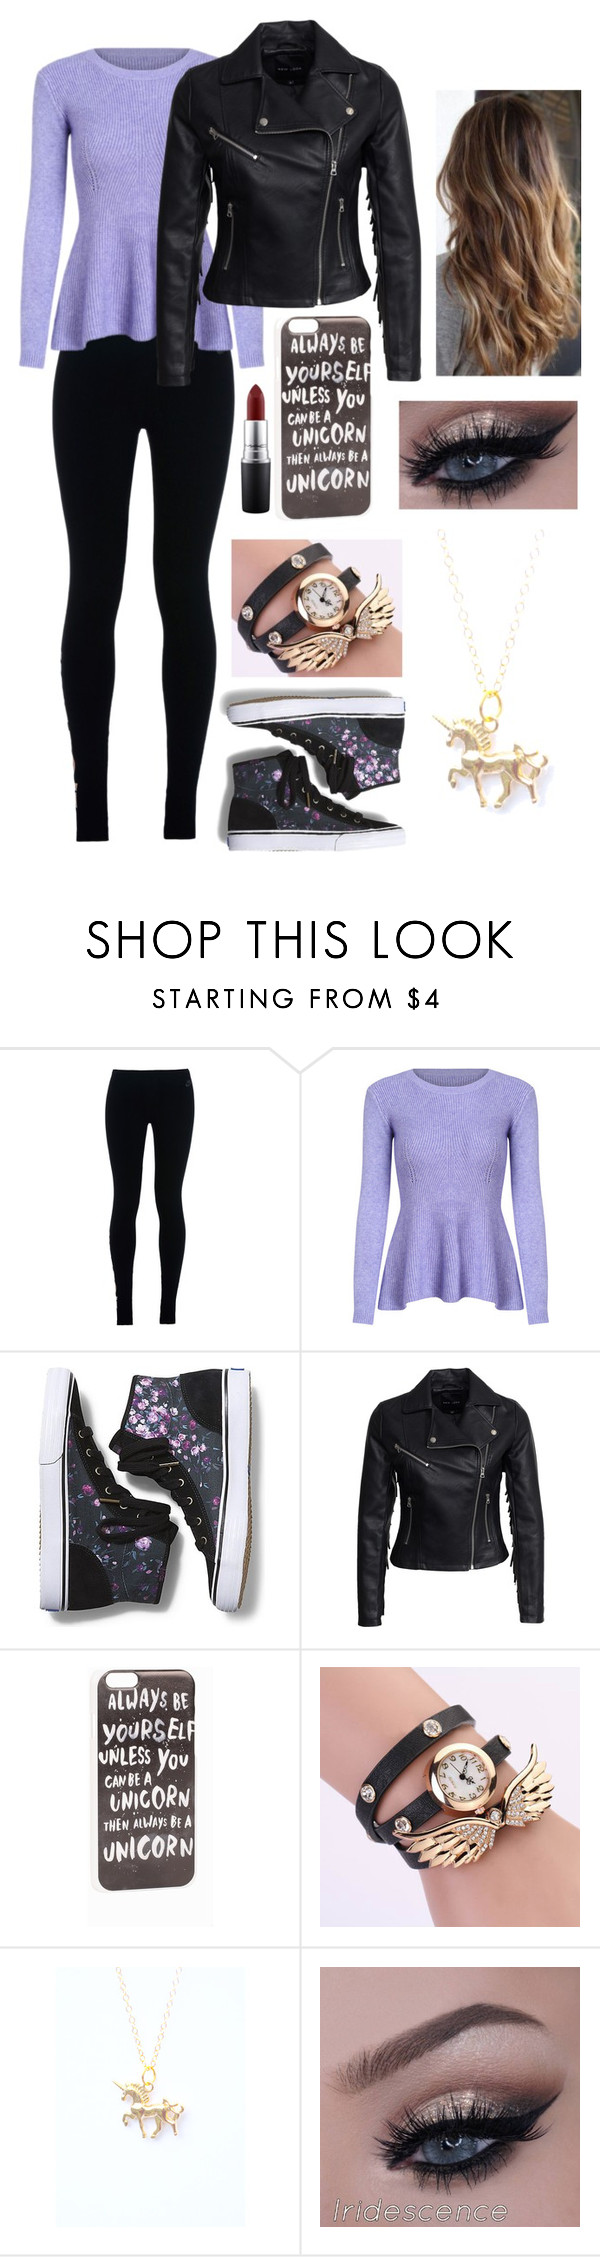 """""""Be yourself"""" by mustachesoccer ❤ liked on Polyvore featuring NIKE, Keds, New Look, JFR and MAC Cosmetics"""